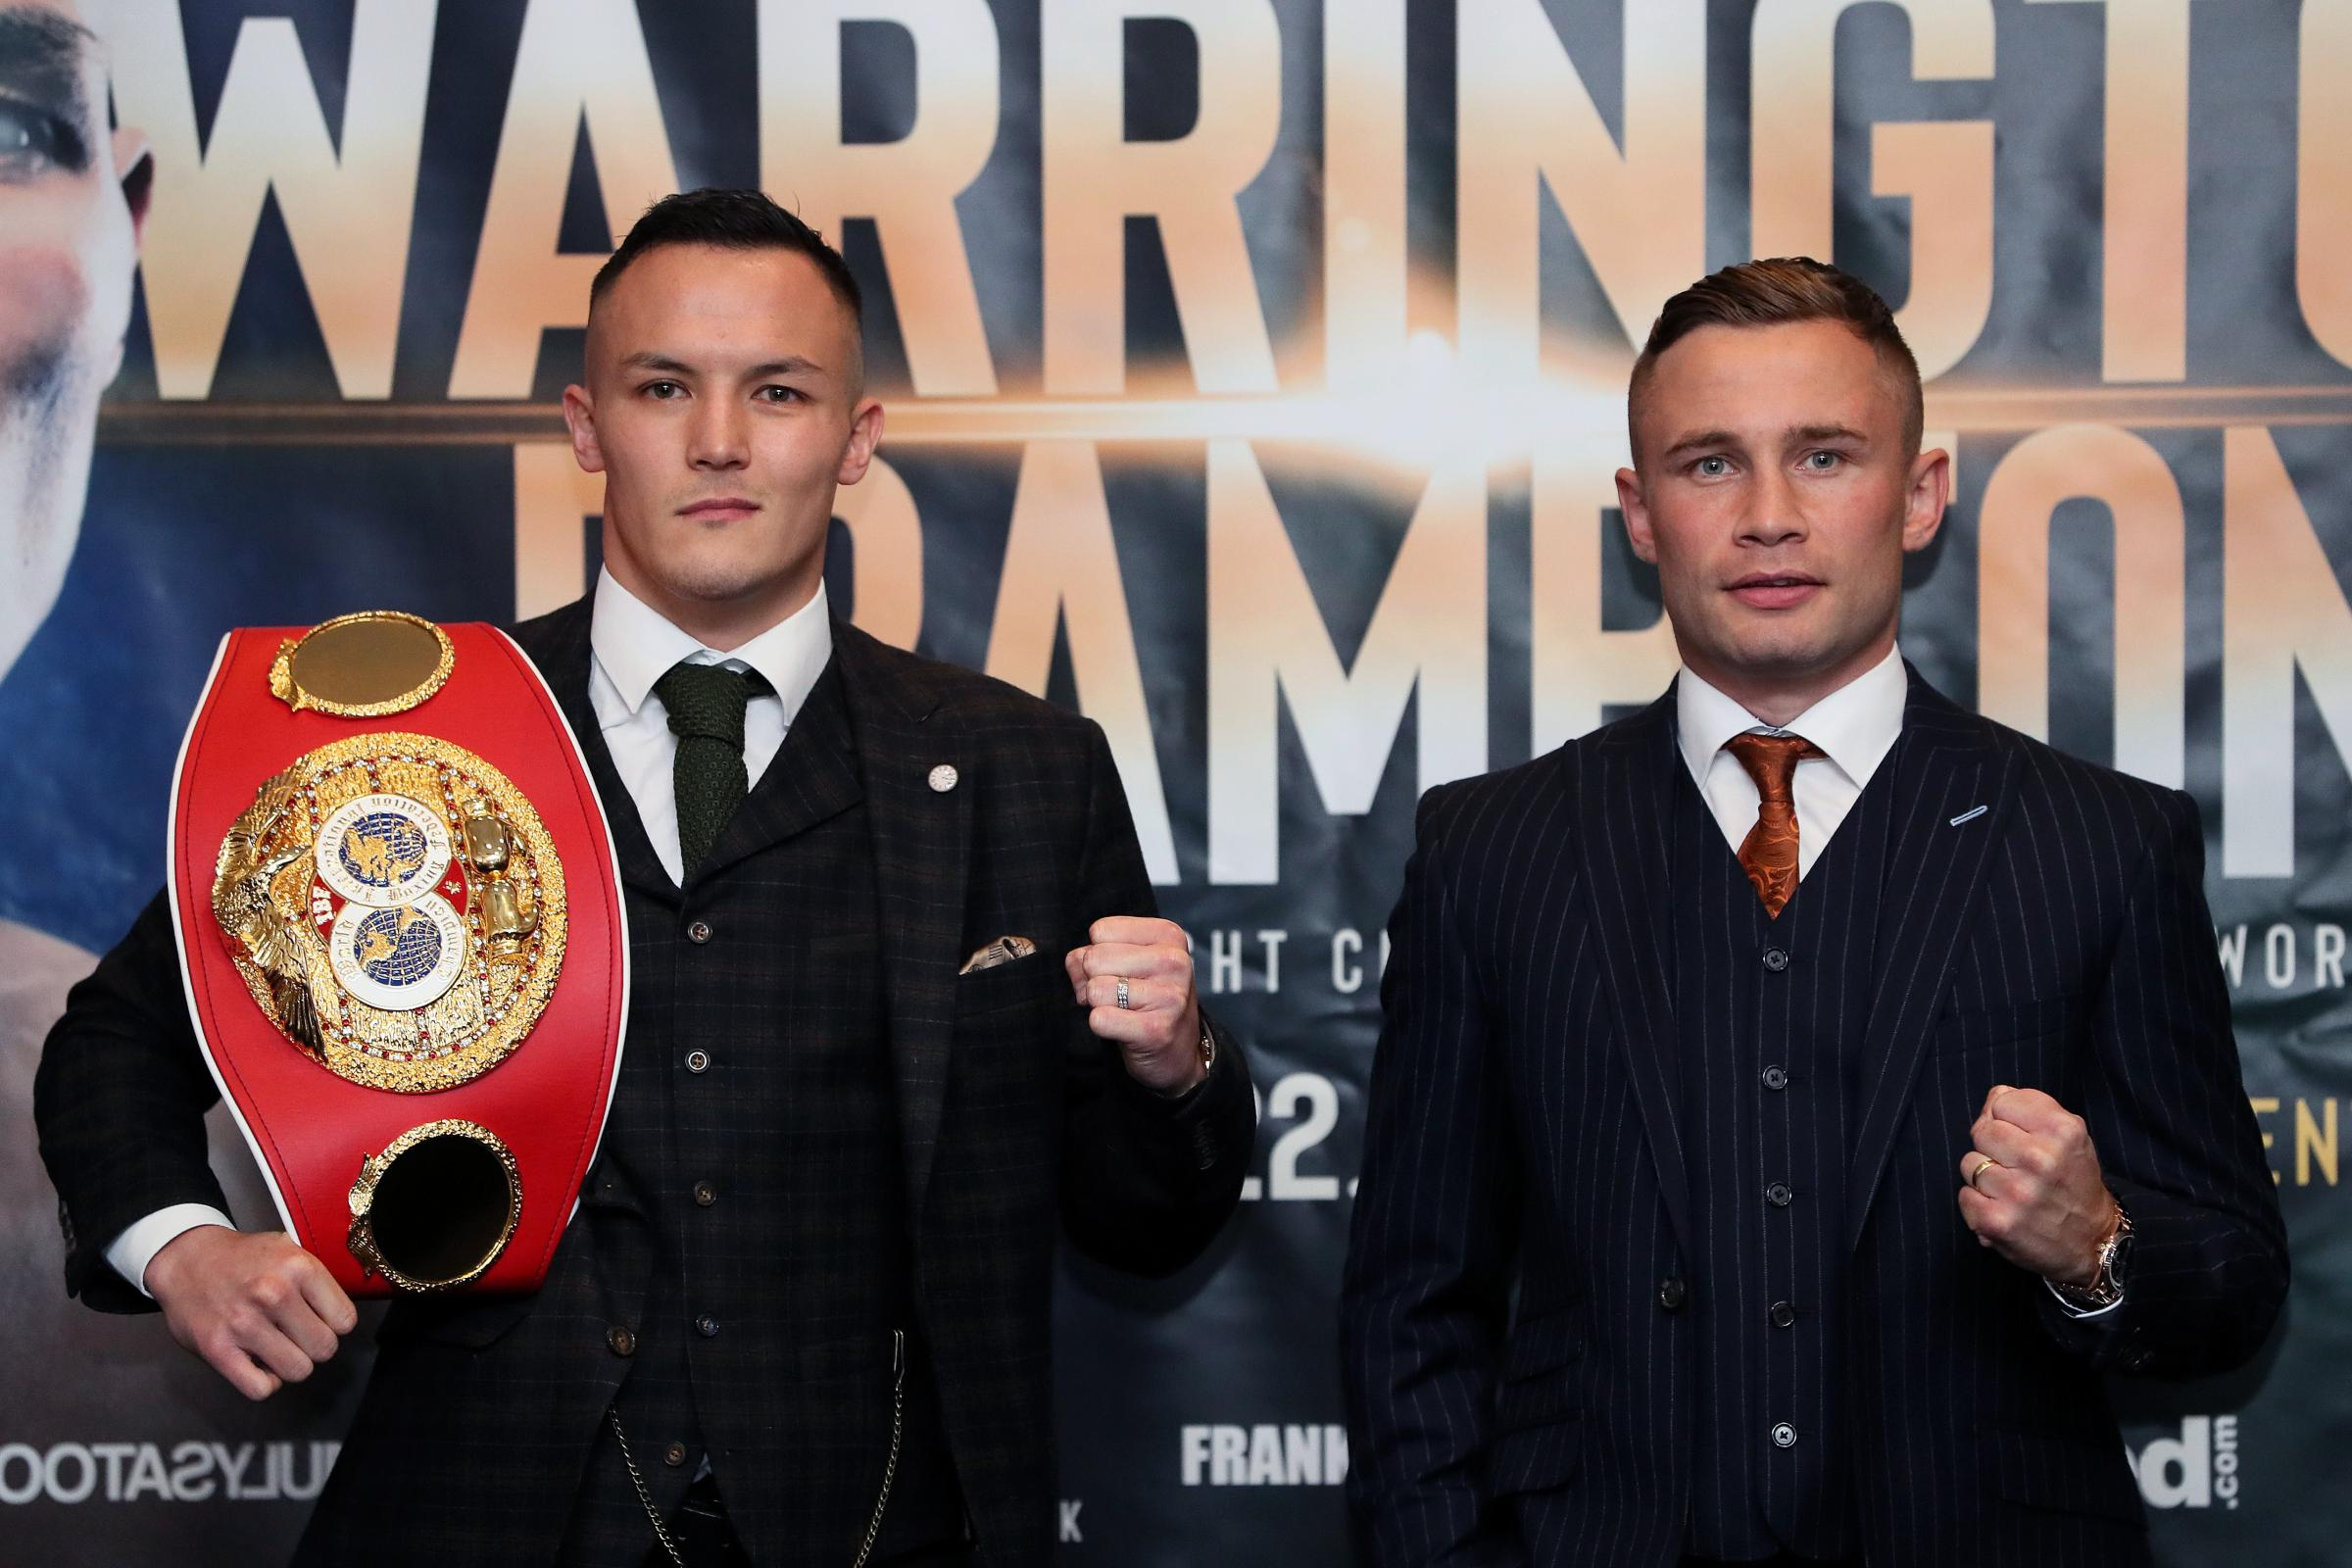 Josh Warrington, left, will defend his world title for the first time when he takes on Carl Frampton, right